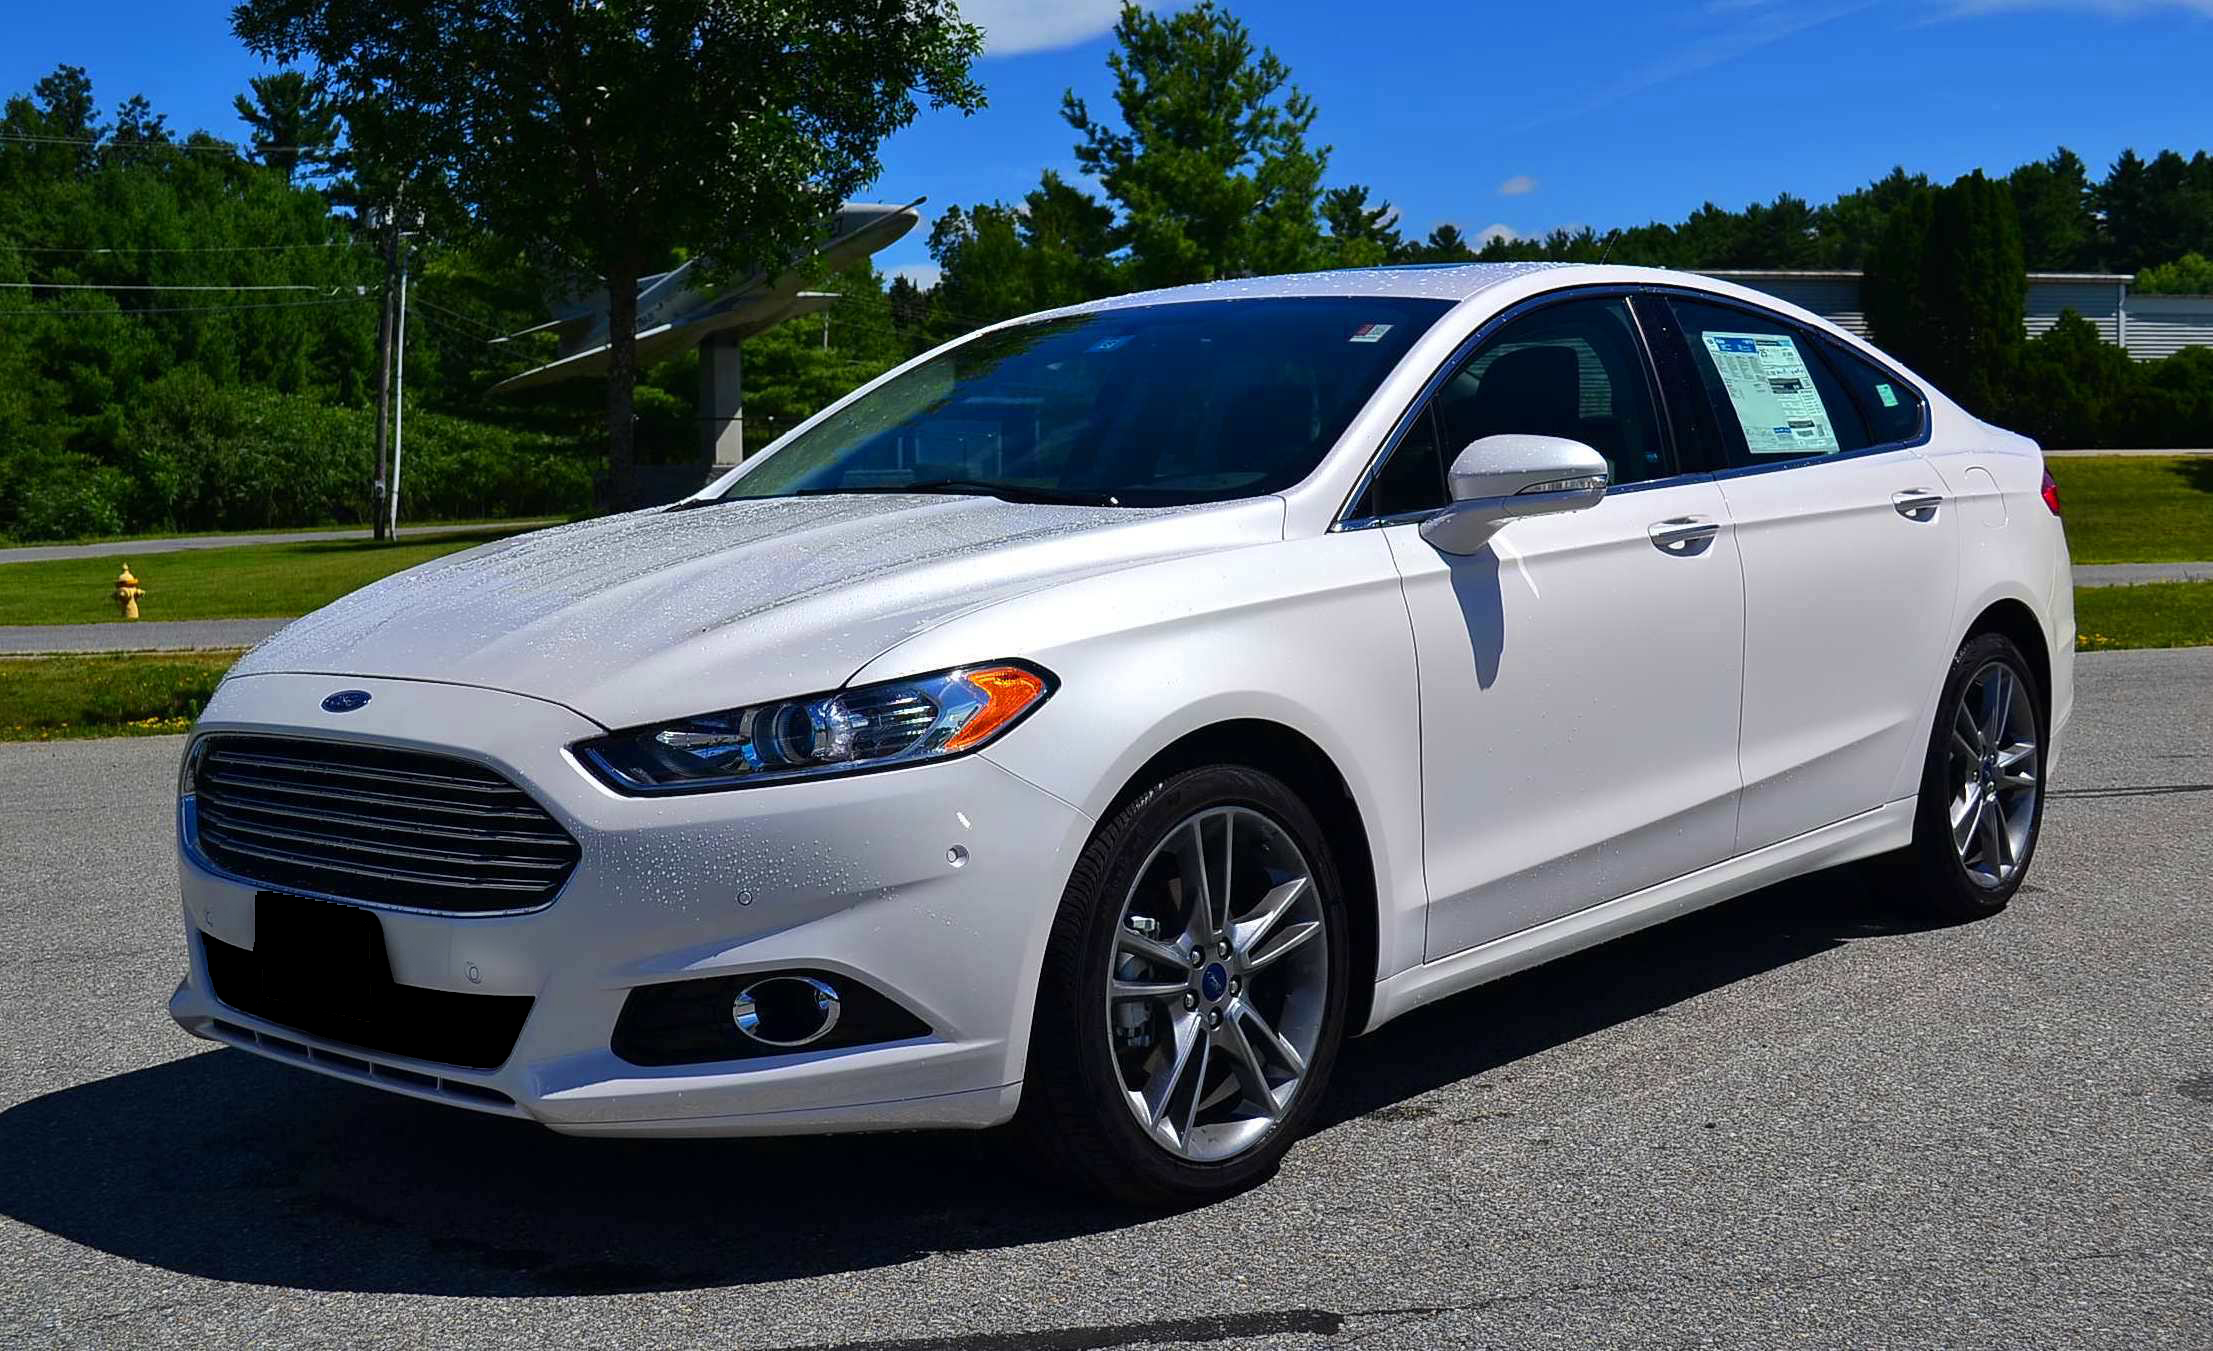 The ford fusion is becoming one of the biggest hits for any american automaker who dares tussle with the best selling accord and camry